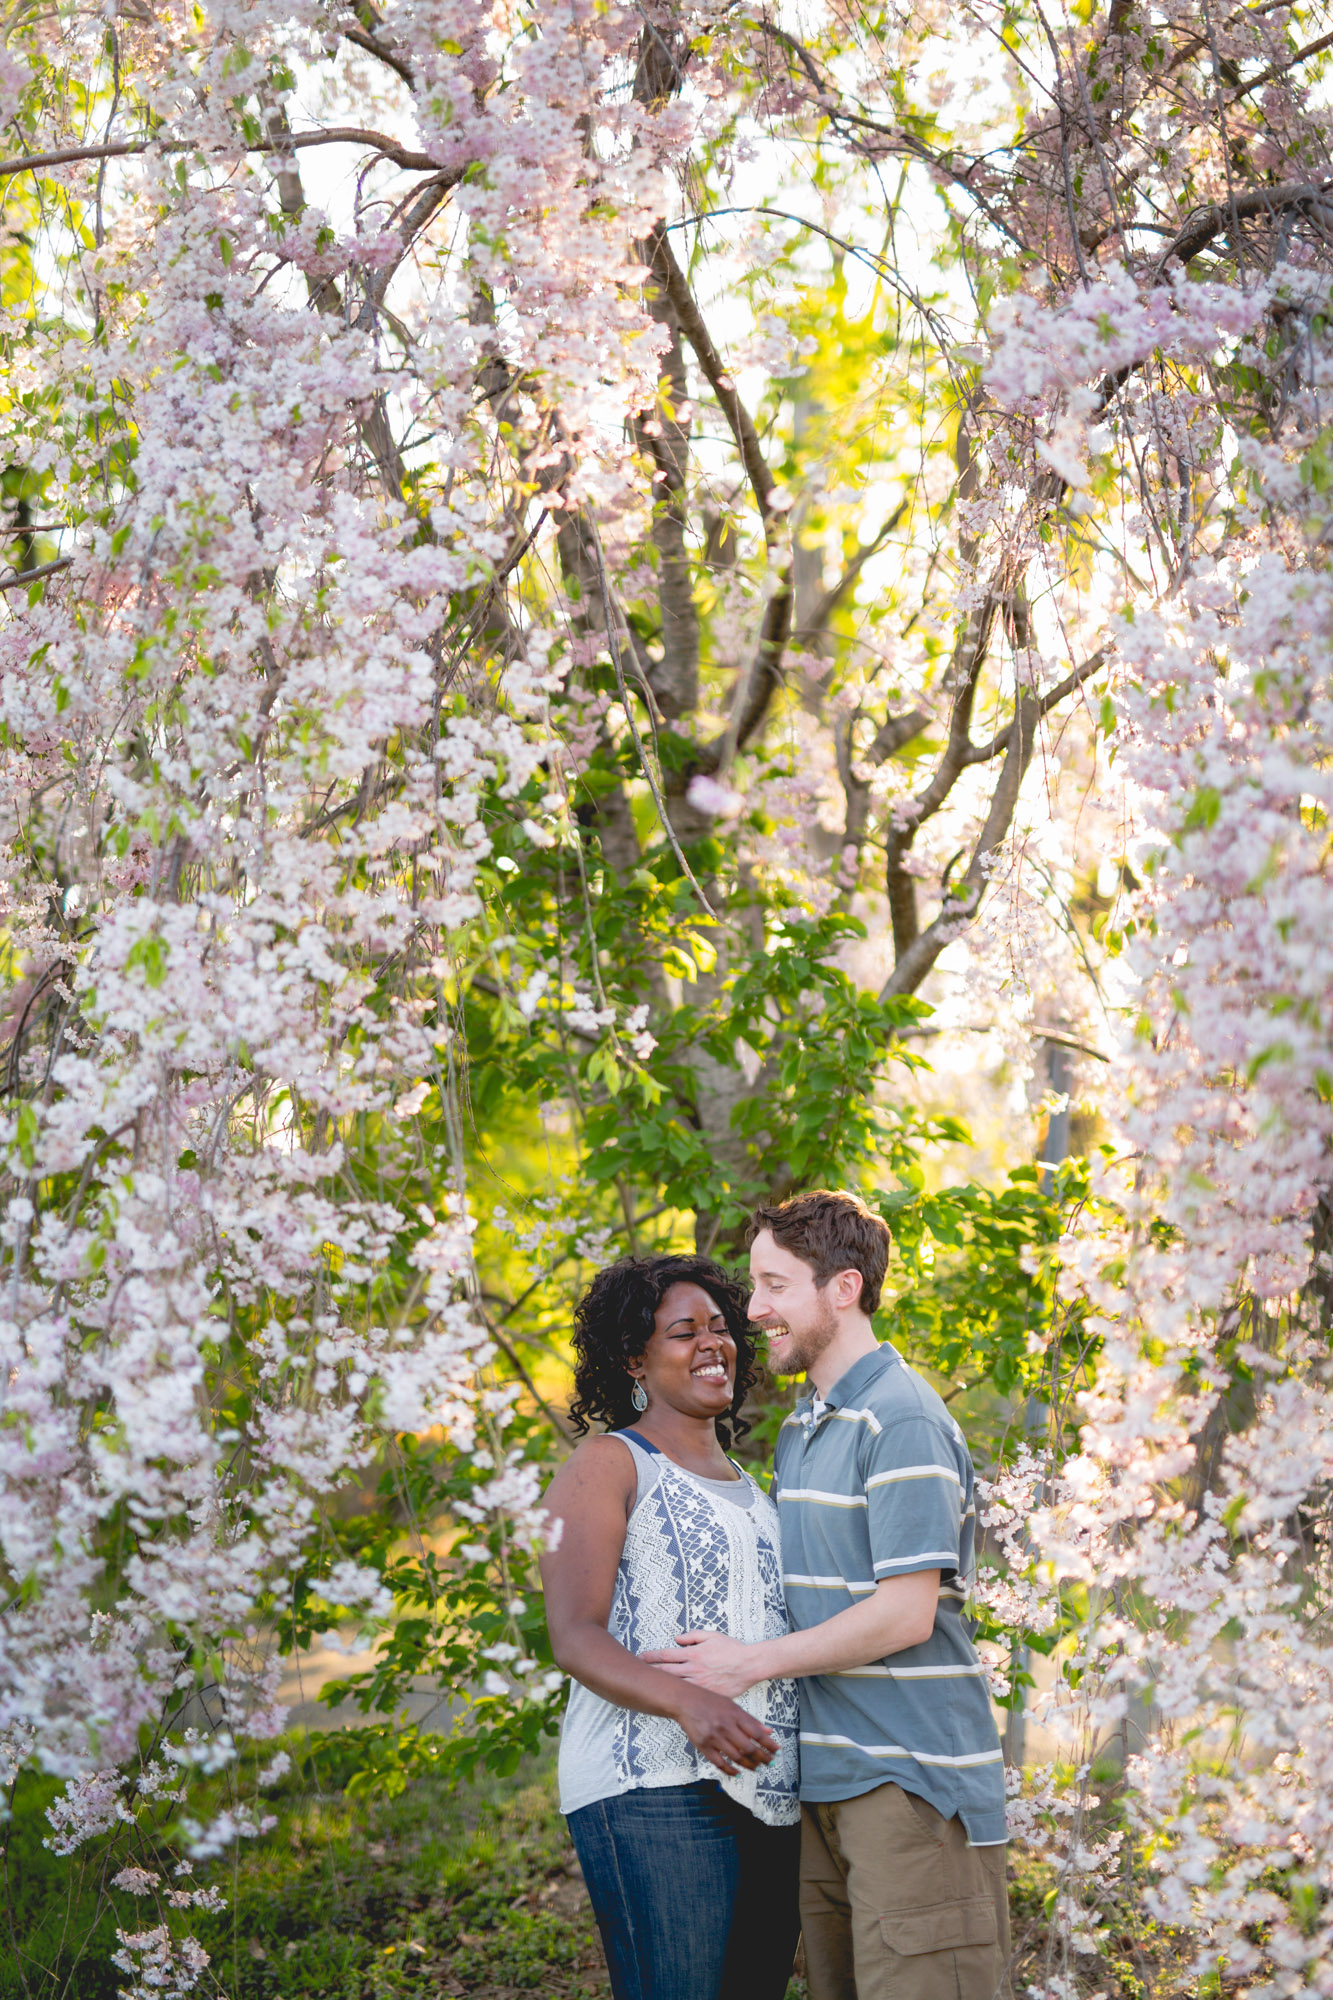 Quakertown Memorial Park Engagement Photos 10